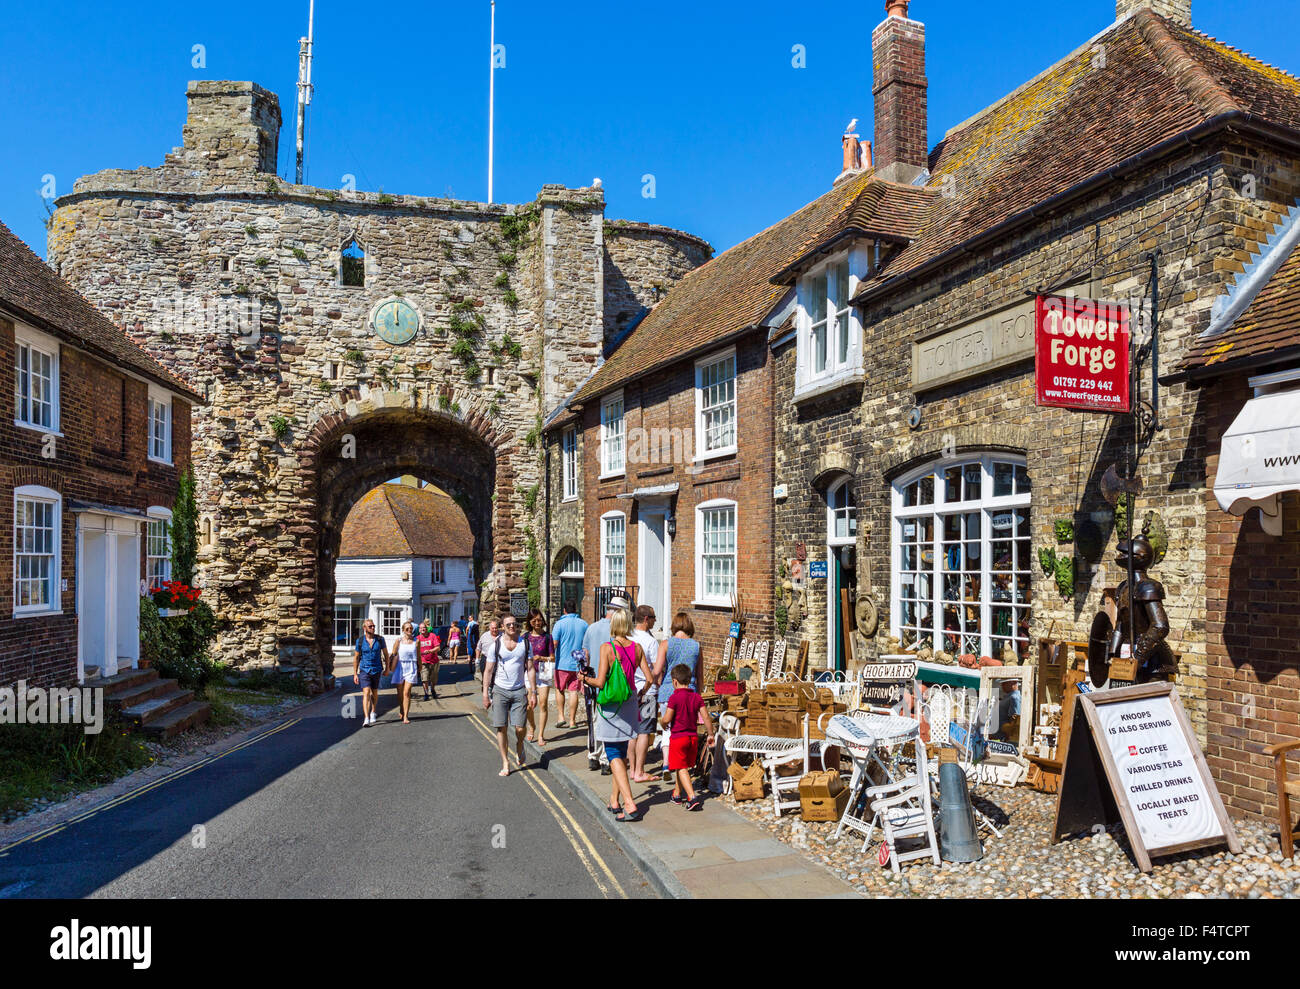 The 14thC Landgate arch, an historic entrance into the old town, Rye, East Sussex, England, UK - Stock Image